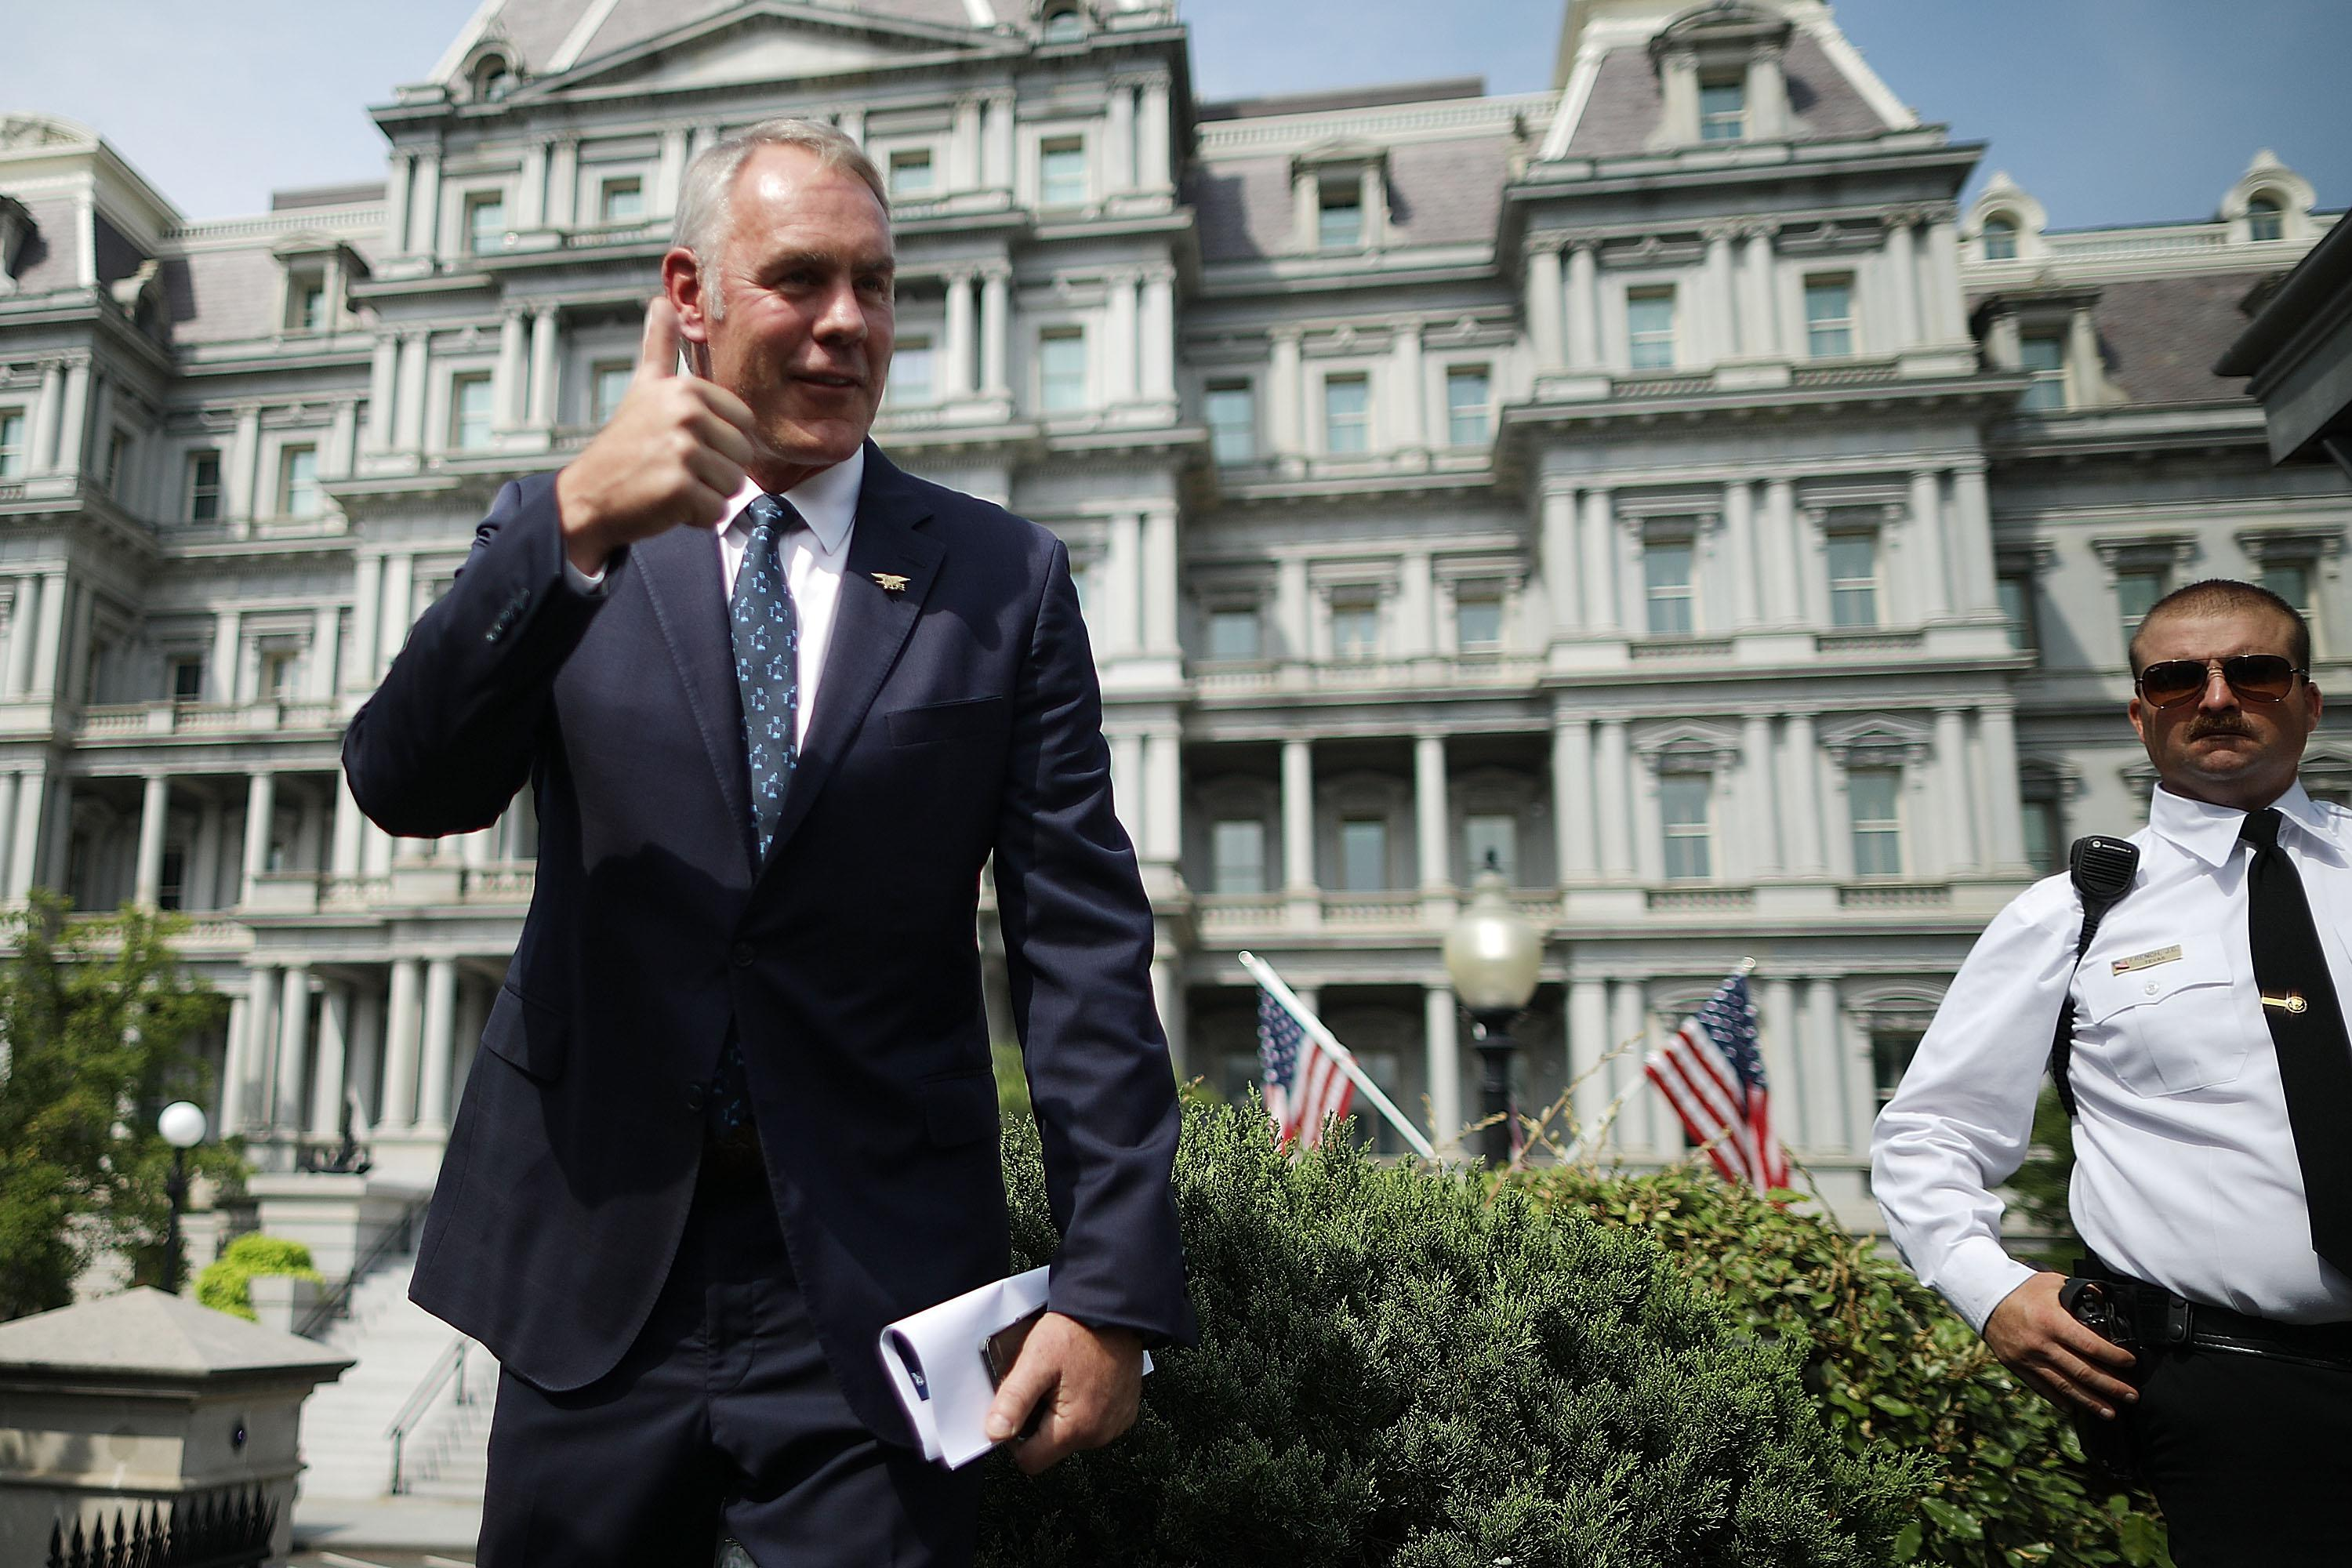 Ryan Zinke, the Interior Secretary, talking to reporters outside the White House